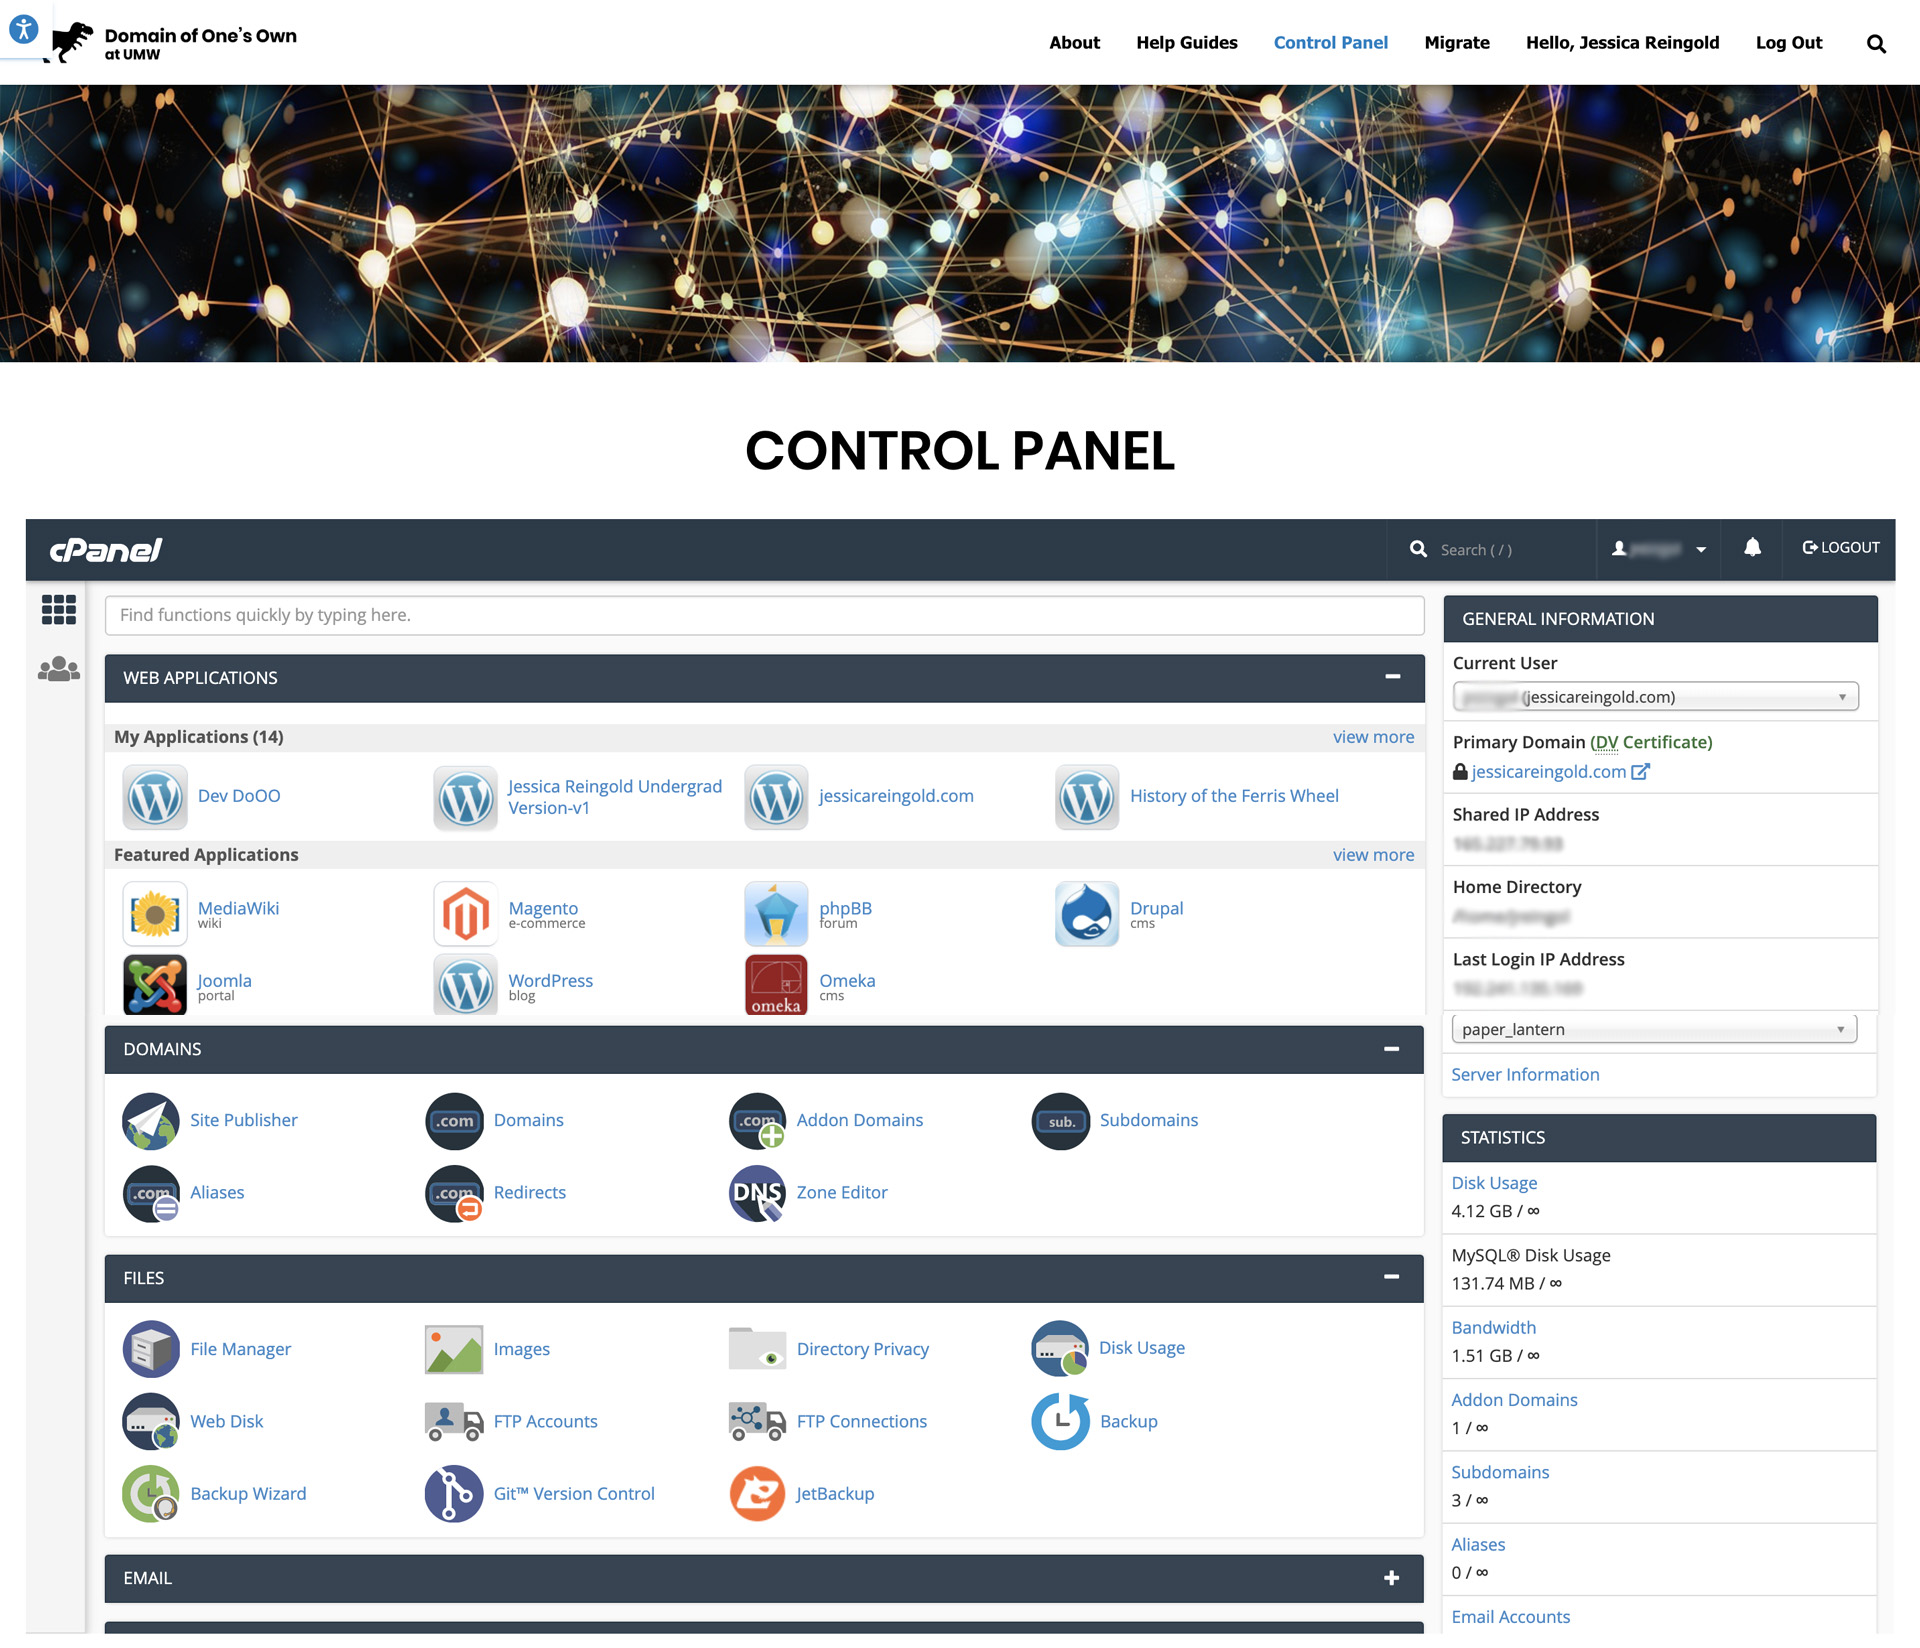 Screenshot of the Control Panel page on umw.domains as of late 2019